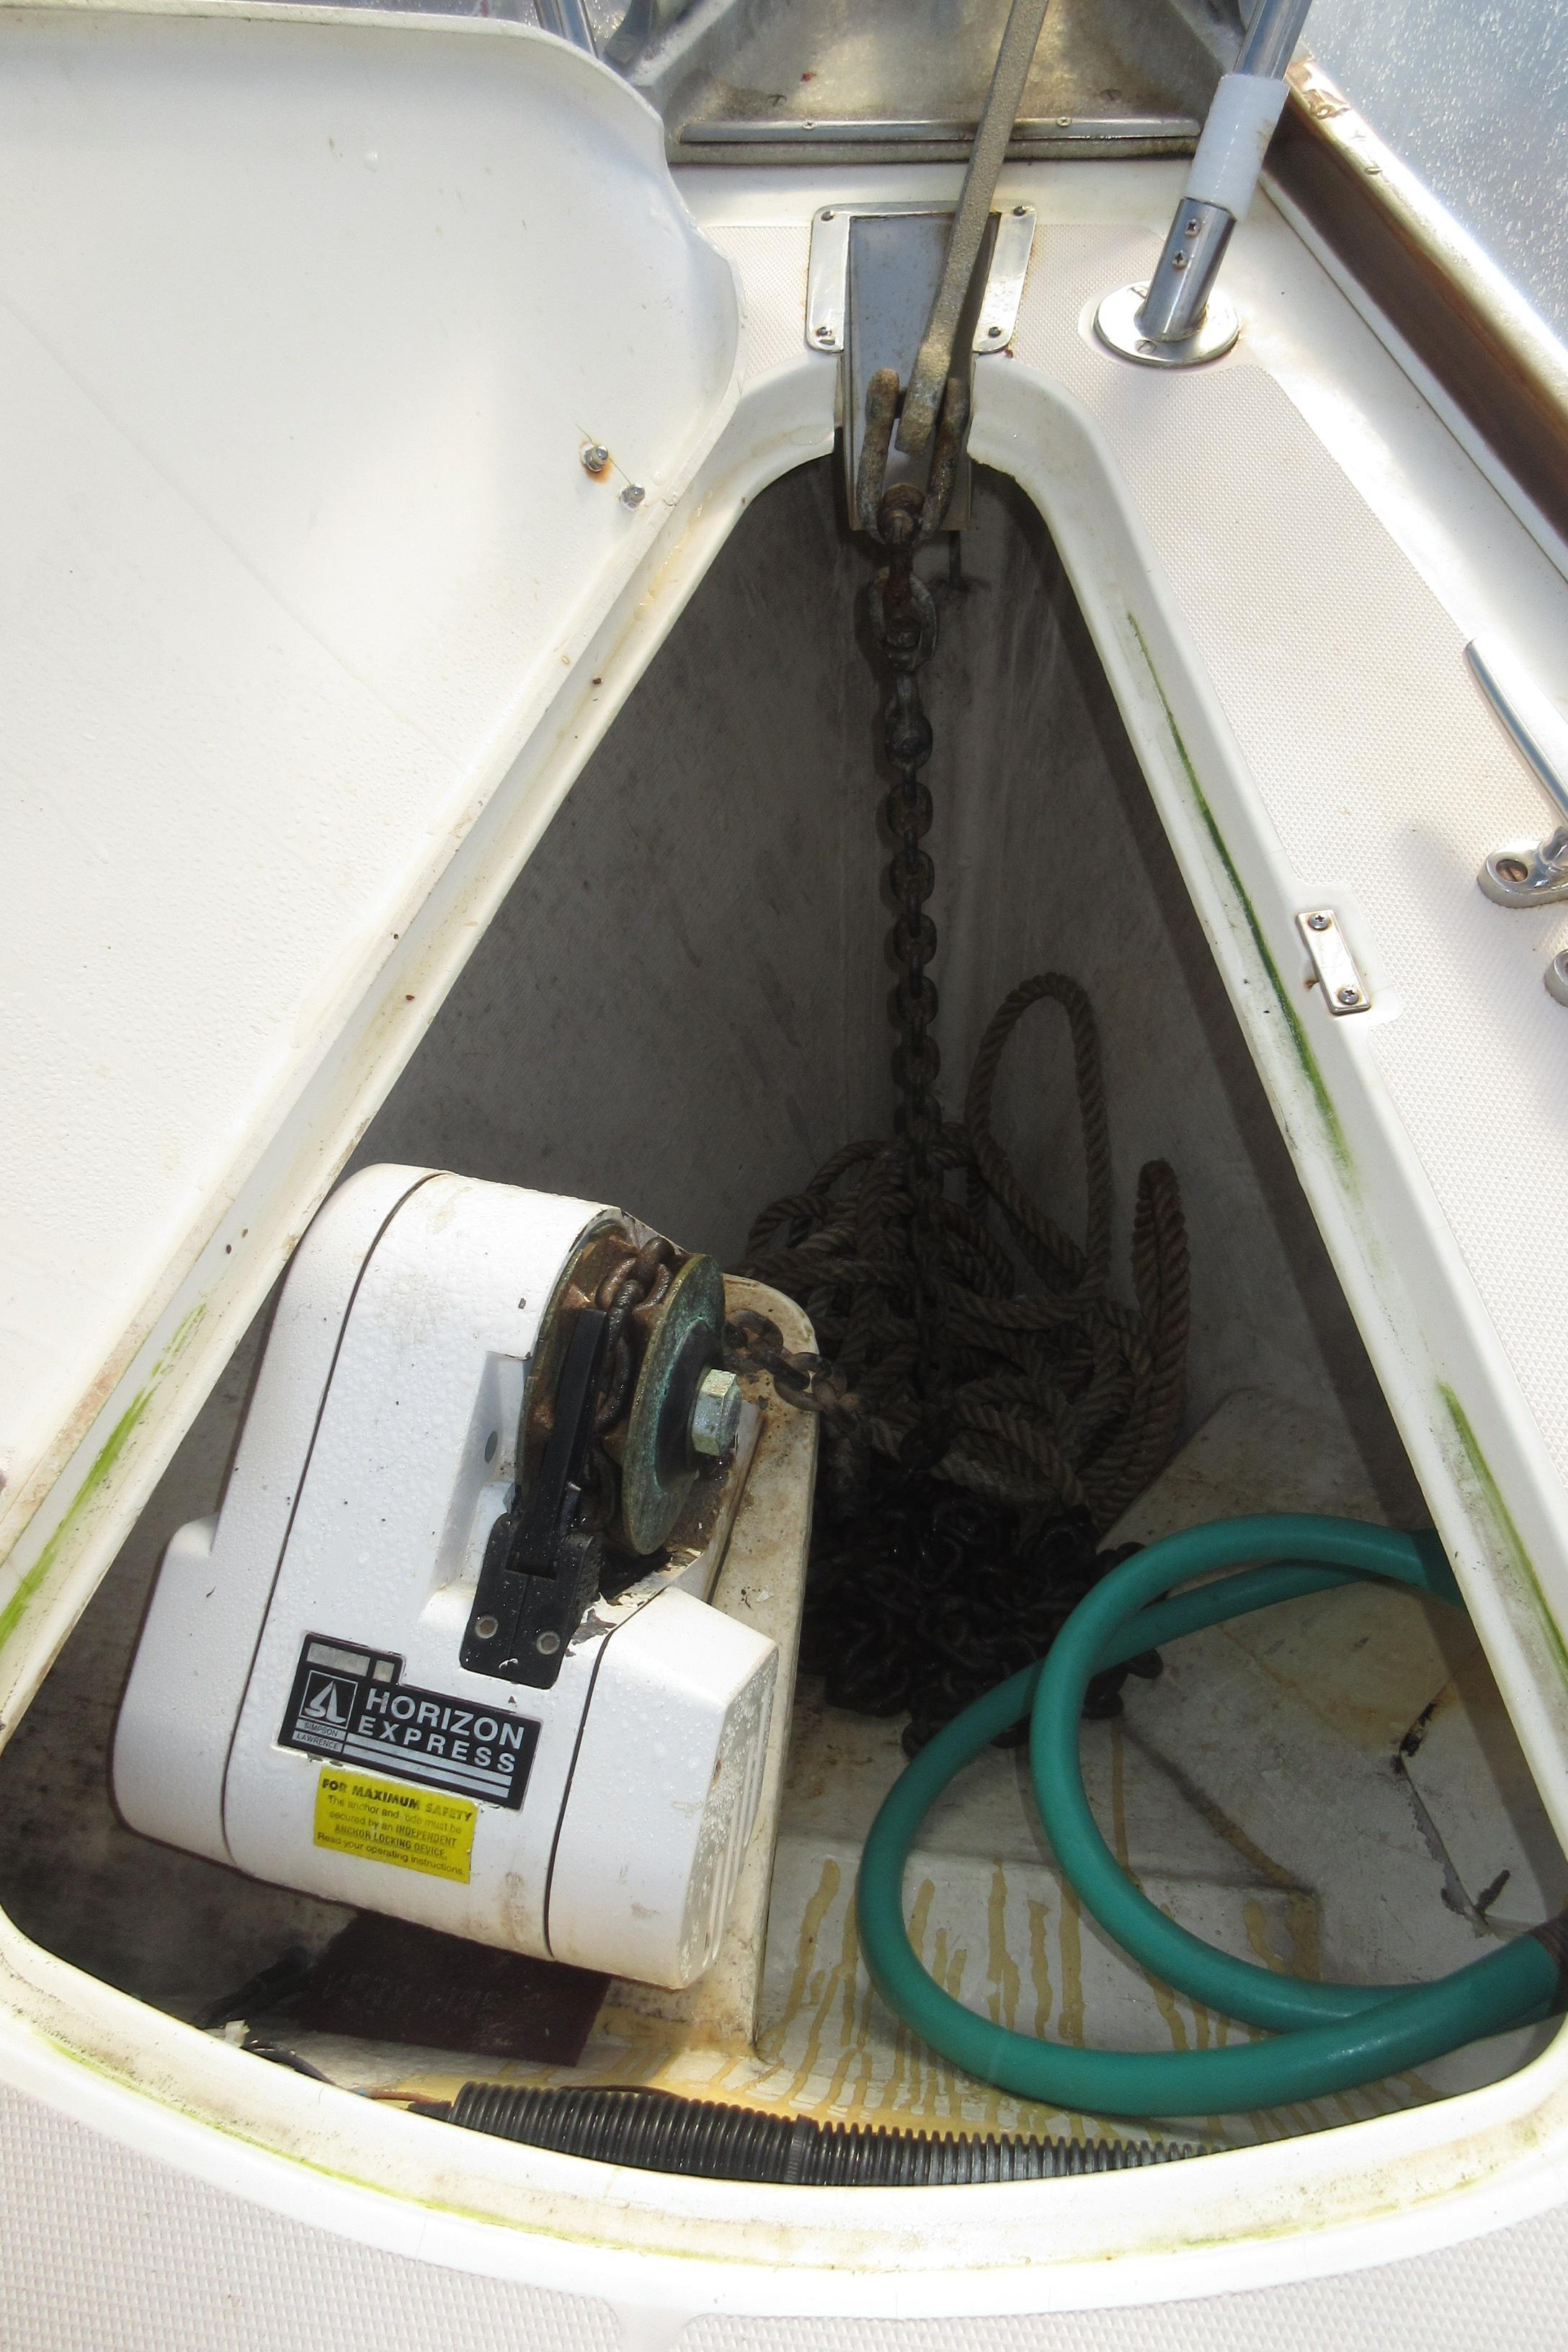 40 sabre sabre 402 coatue anchor locker with windlass and washdown